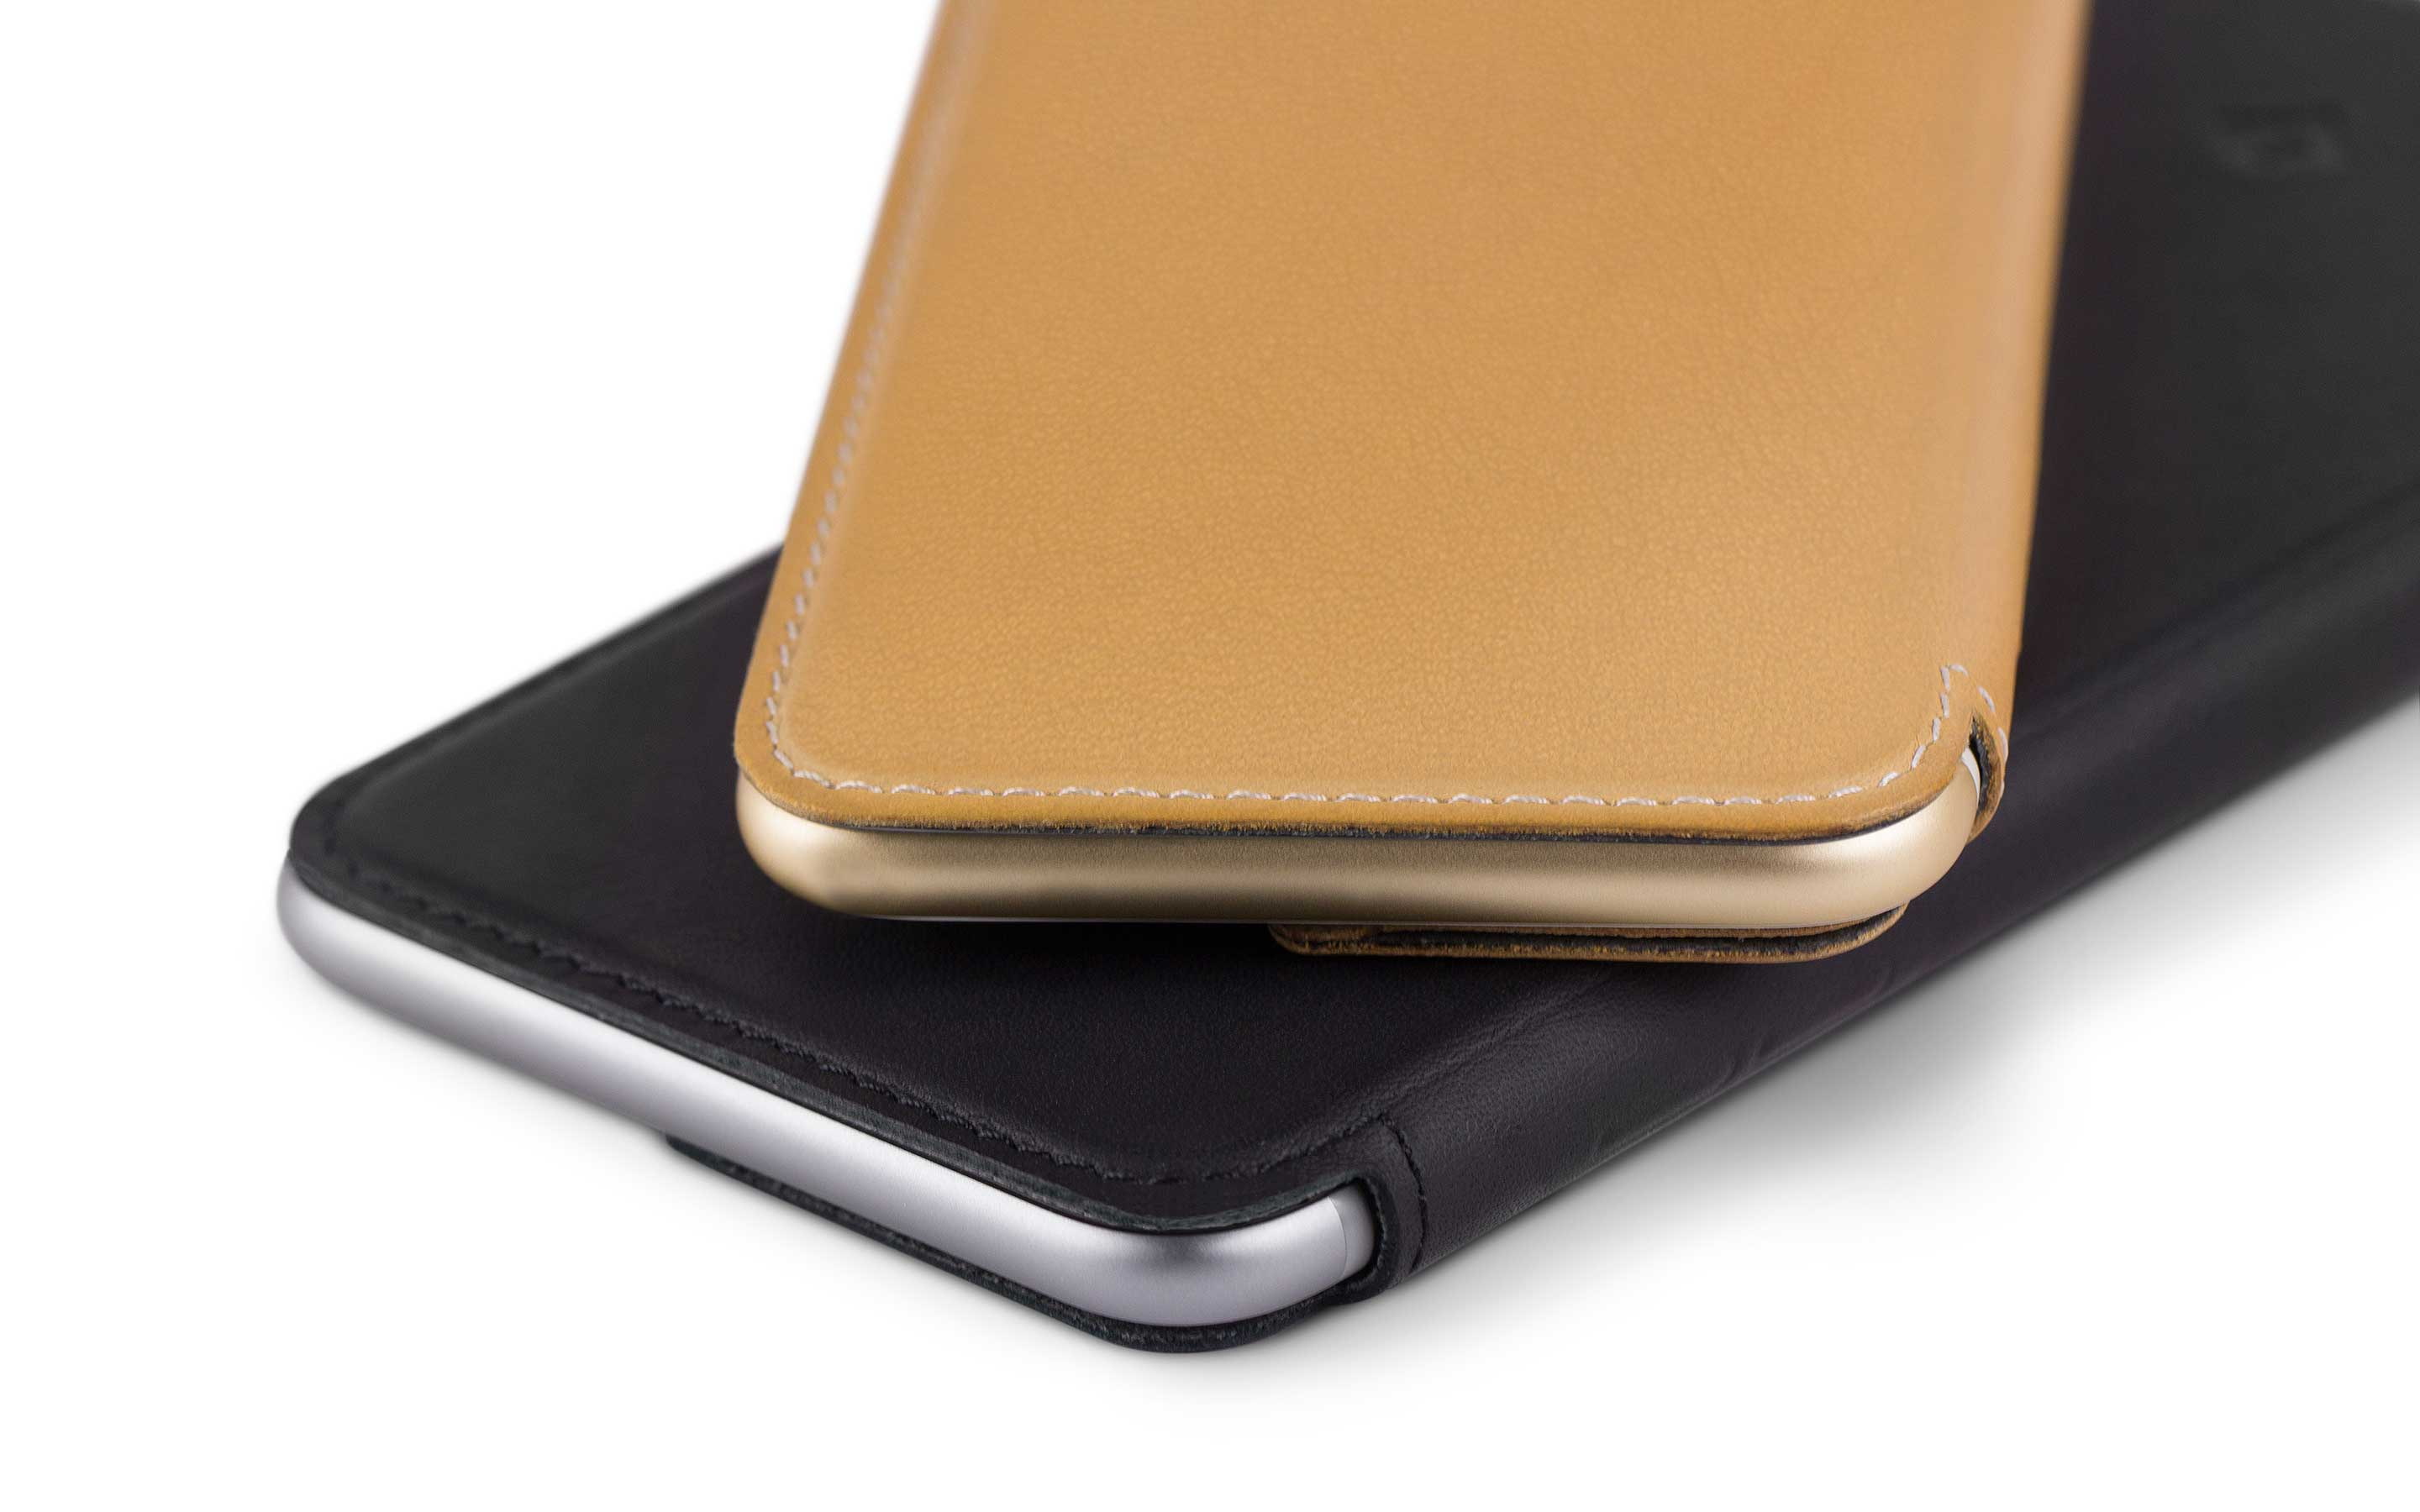 SurfacePad: Best Minimalist Wallet Case for iPhone 6, 6s